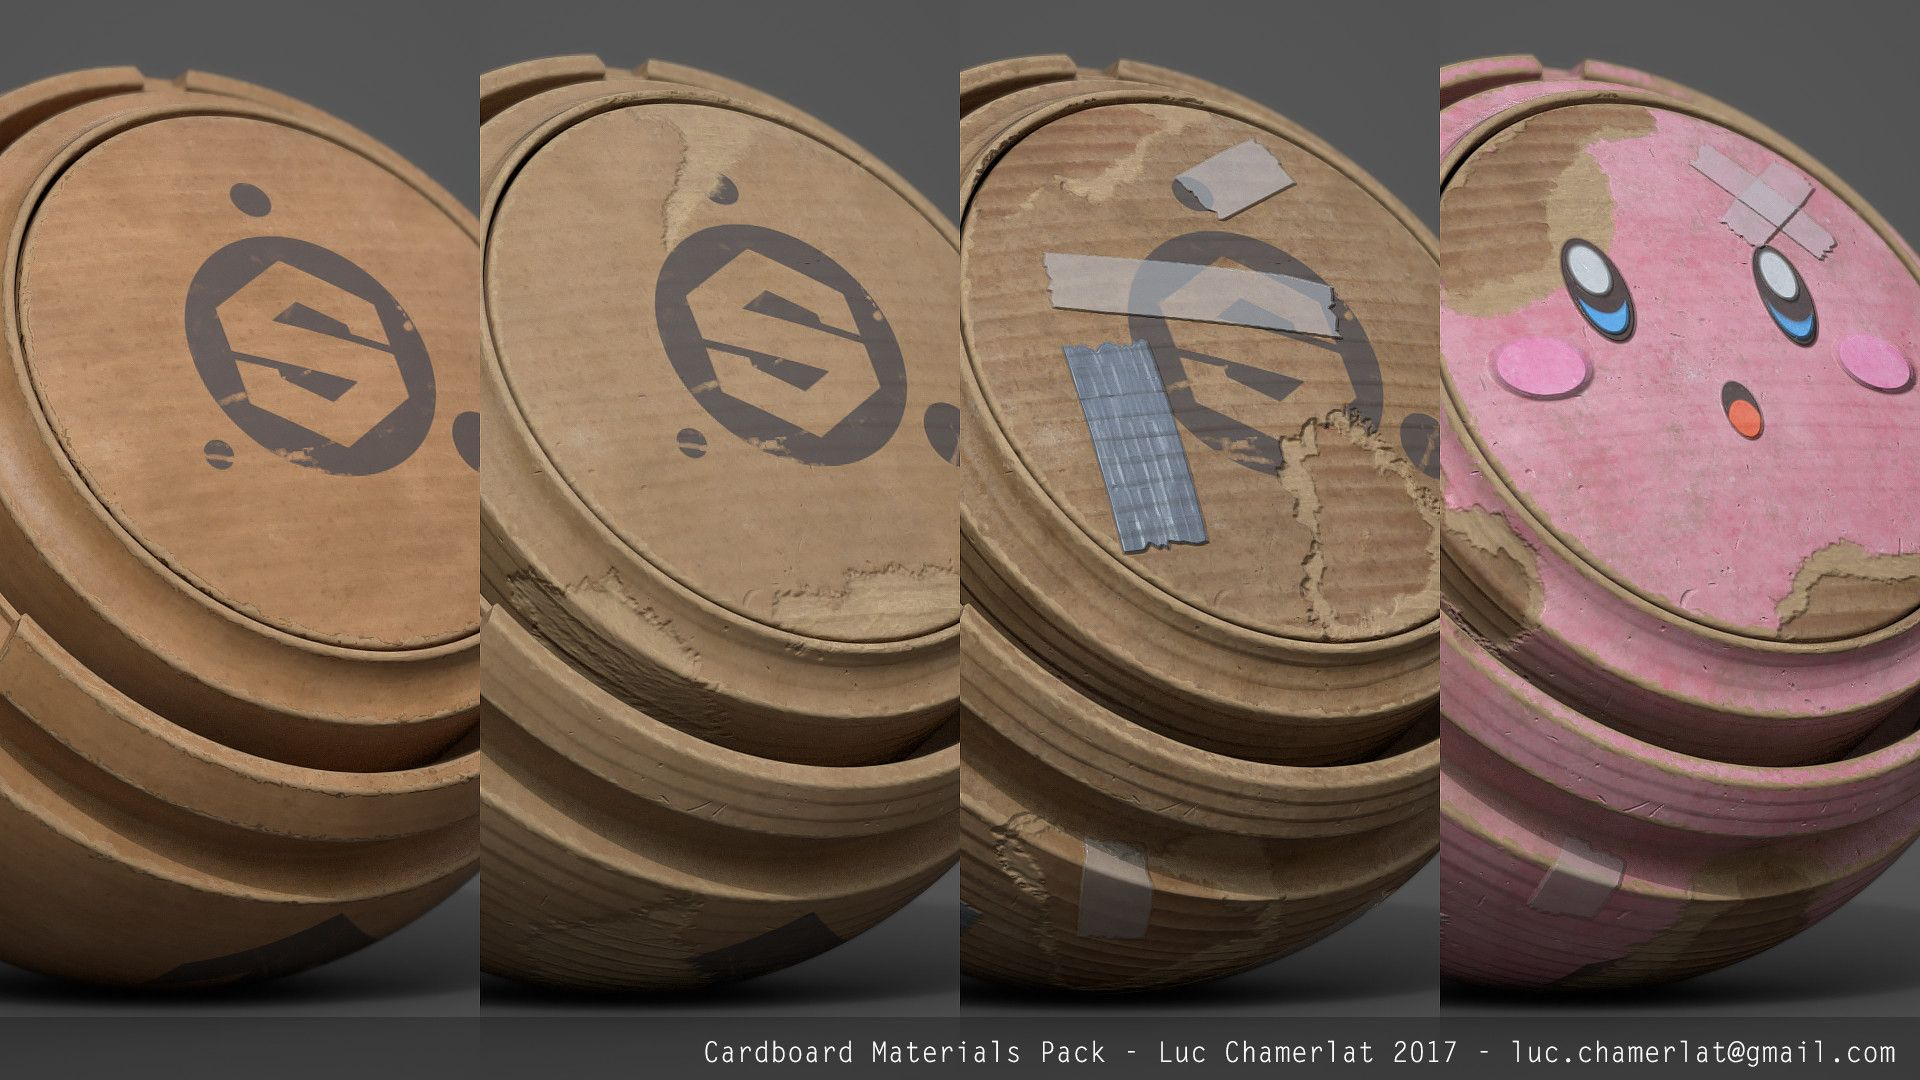 ArtStation - Gumroad free - Cardboard Materials Pack